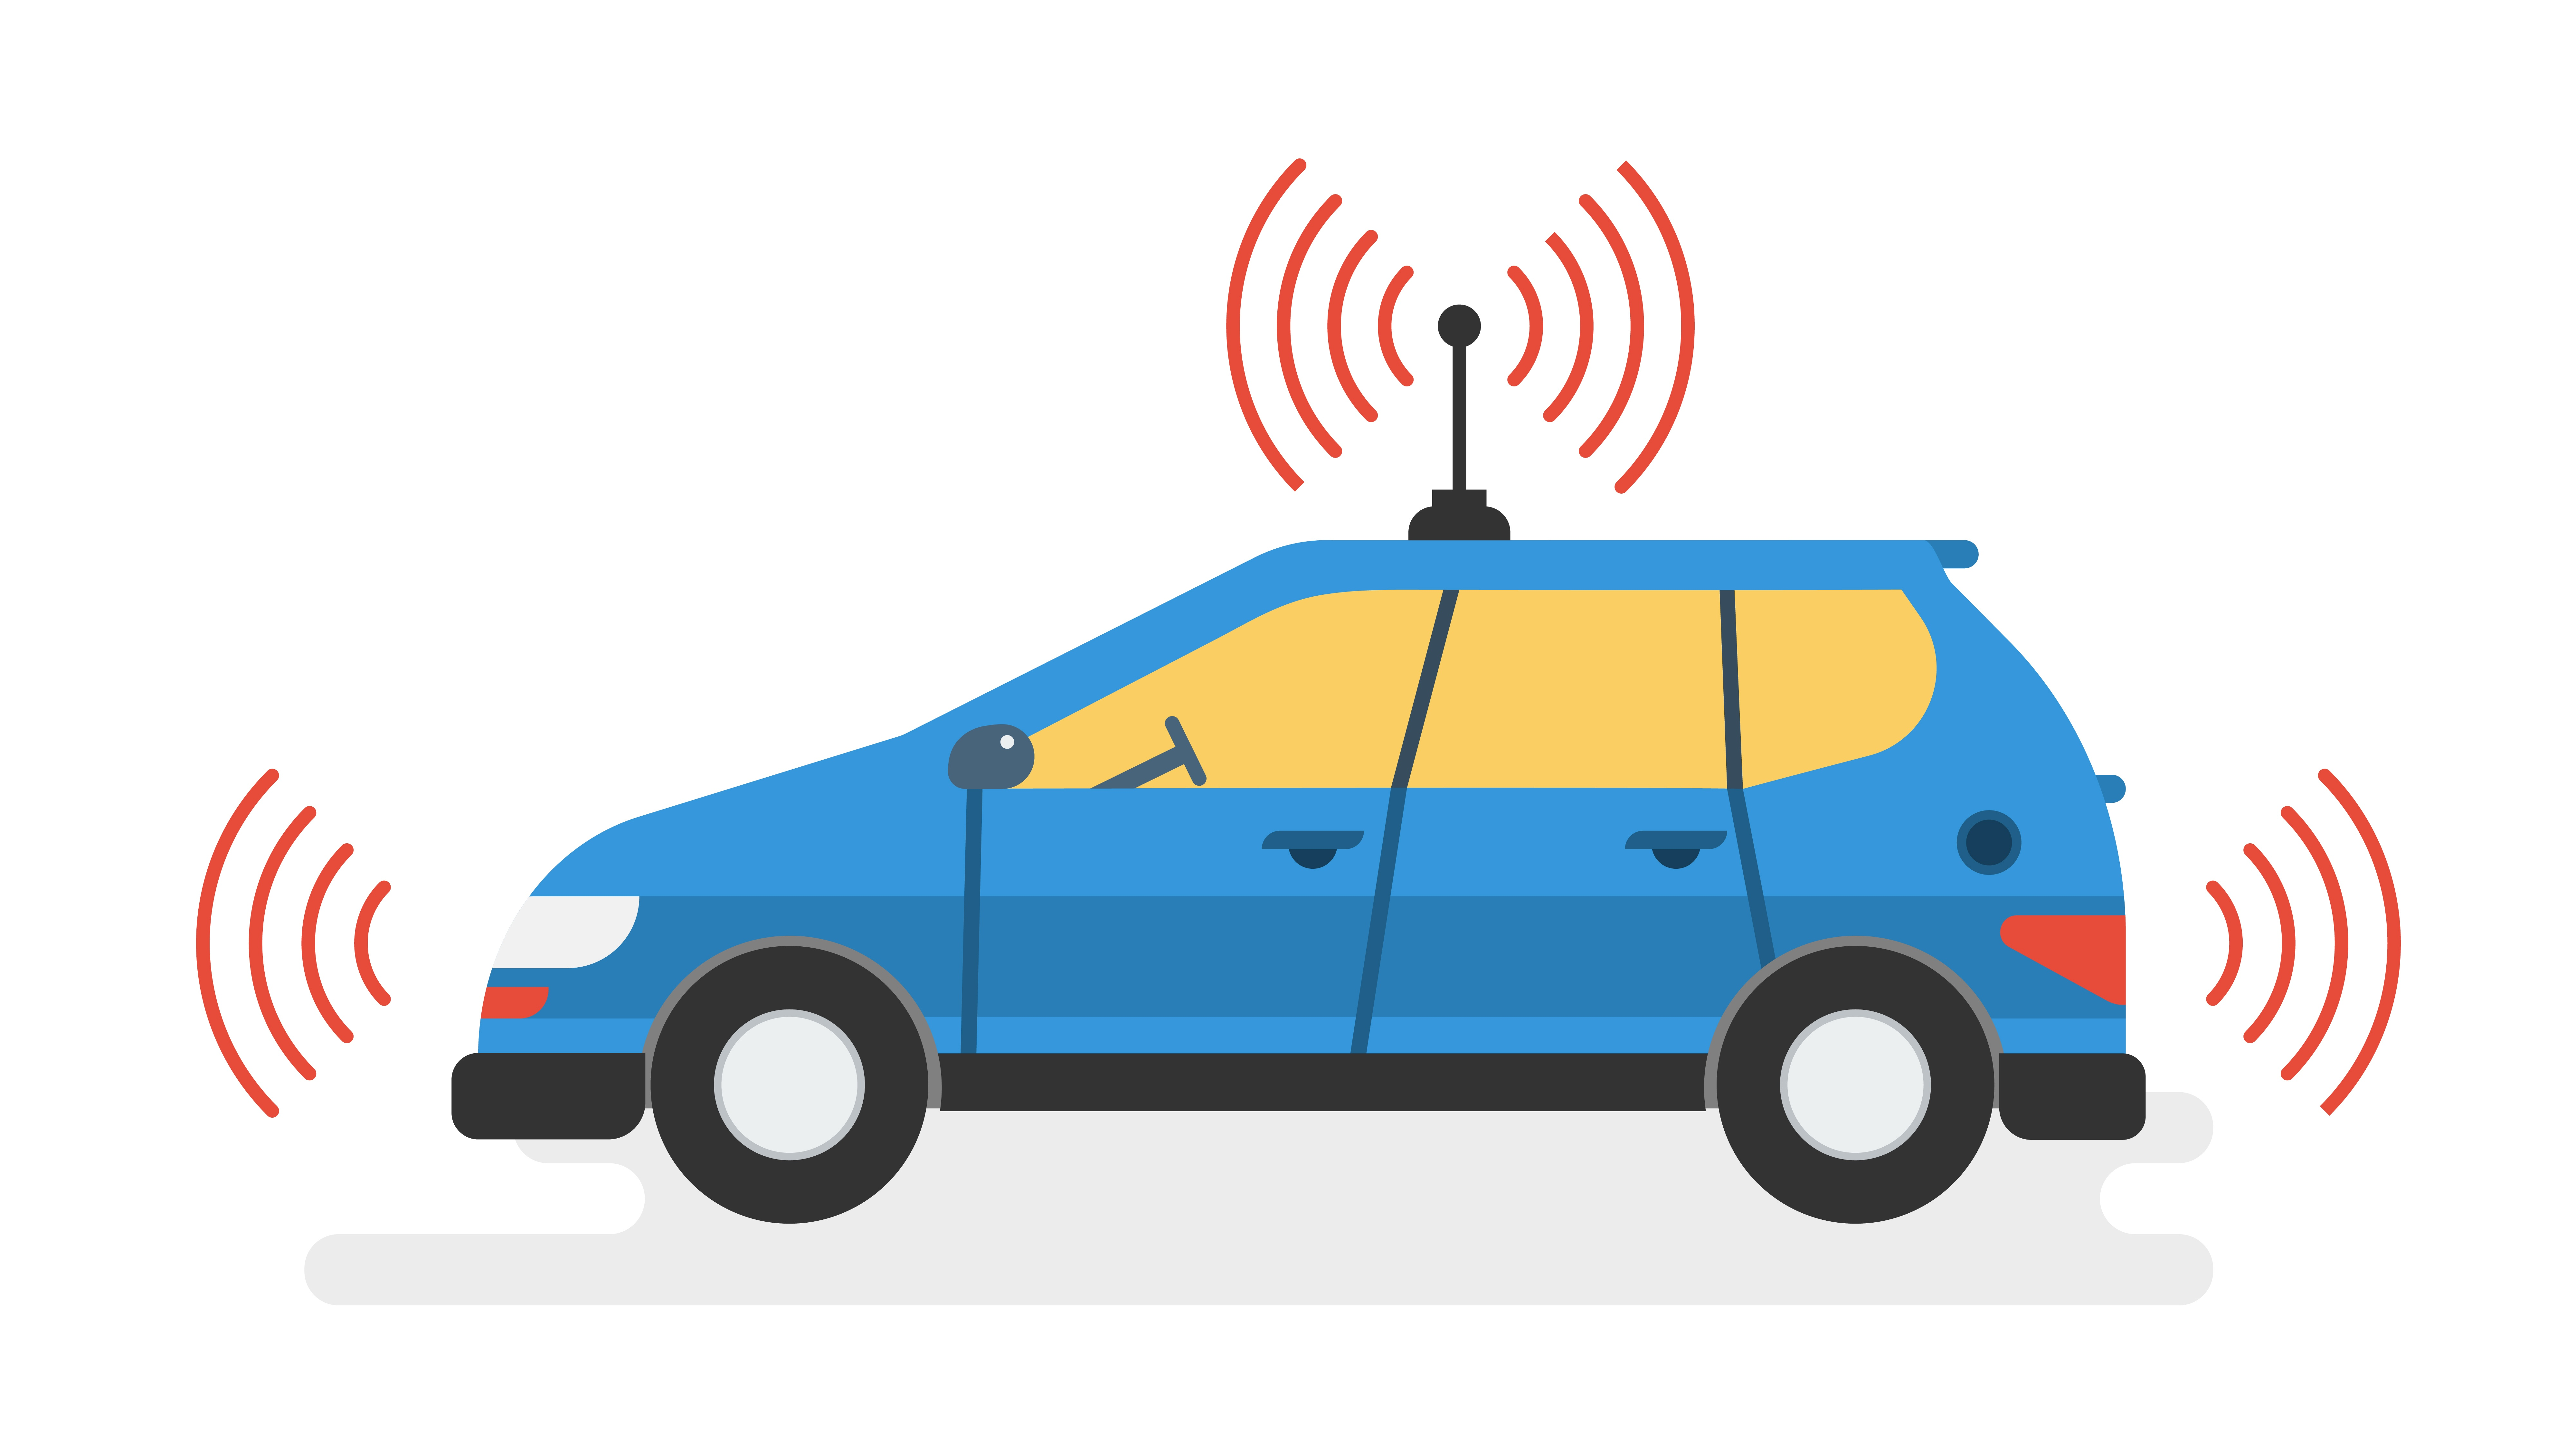 check the post:Self-Driving Cars and Their Effect on Traffic for a description of the image